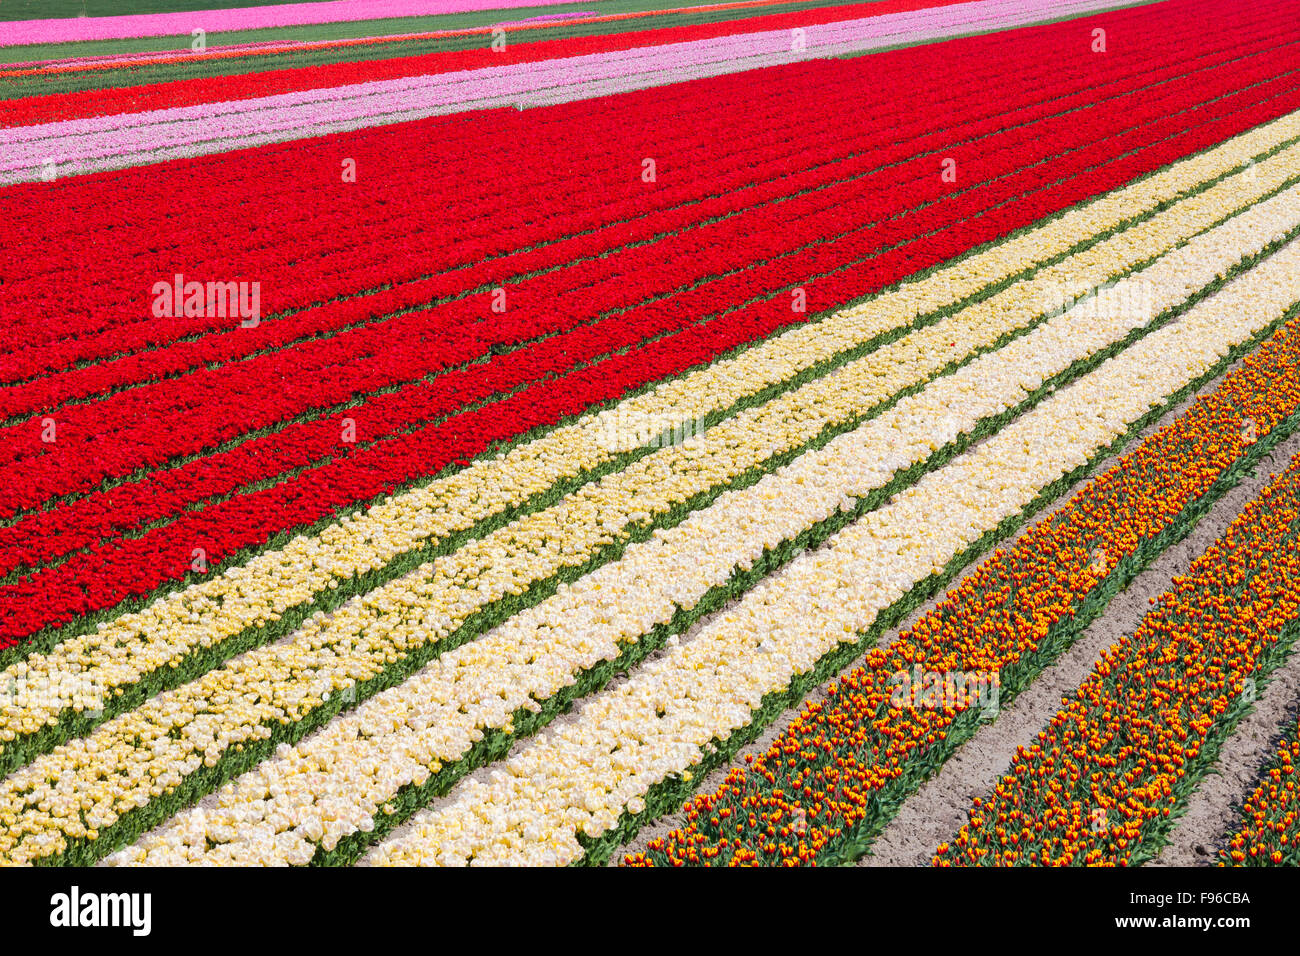 Field of Tulips, North Holland, Netherlands - Stock Image